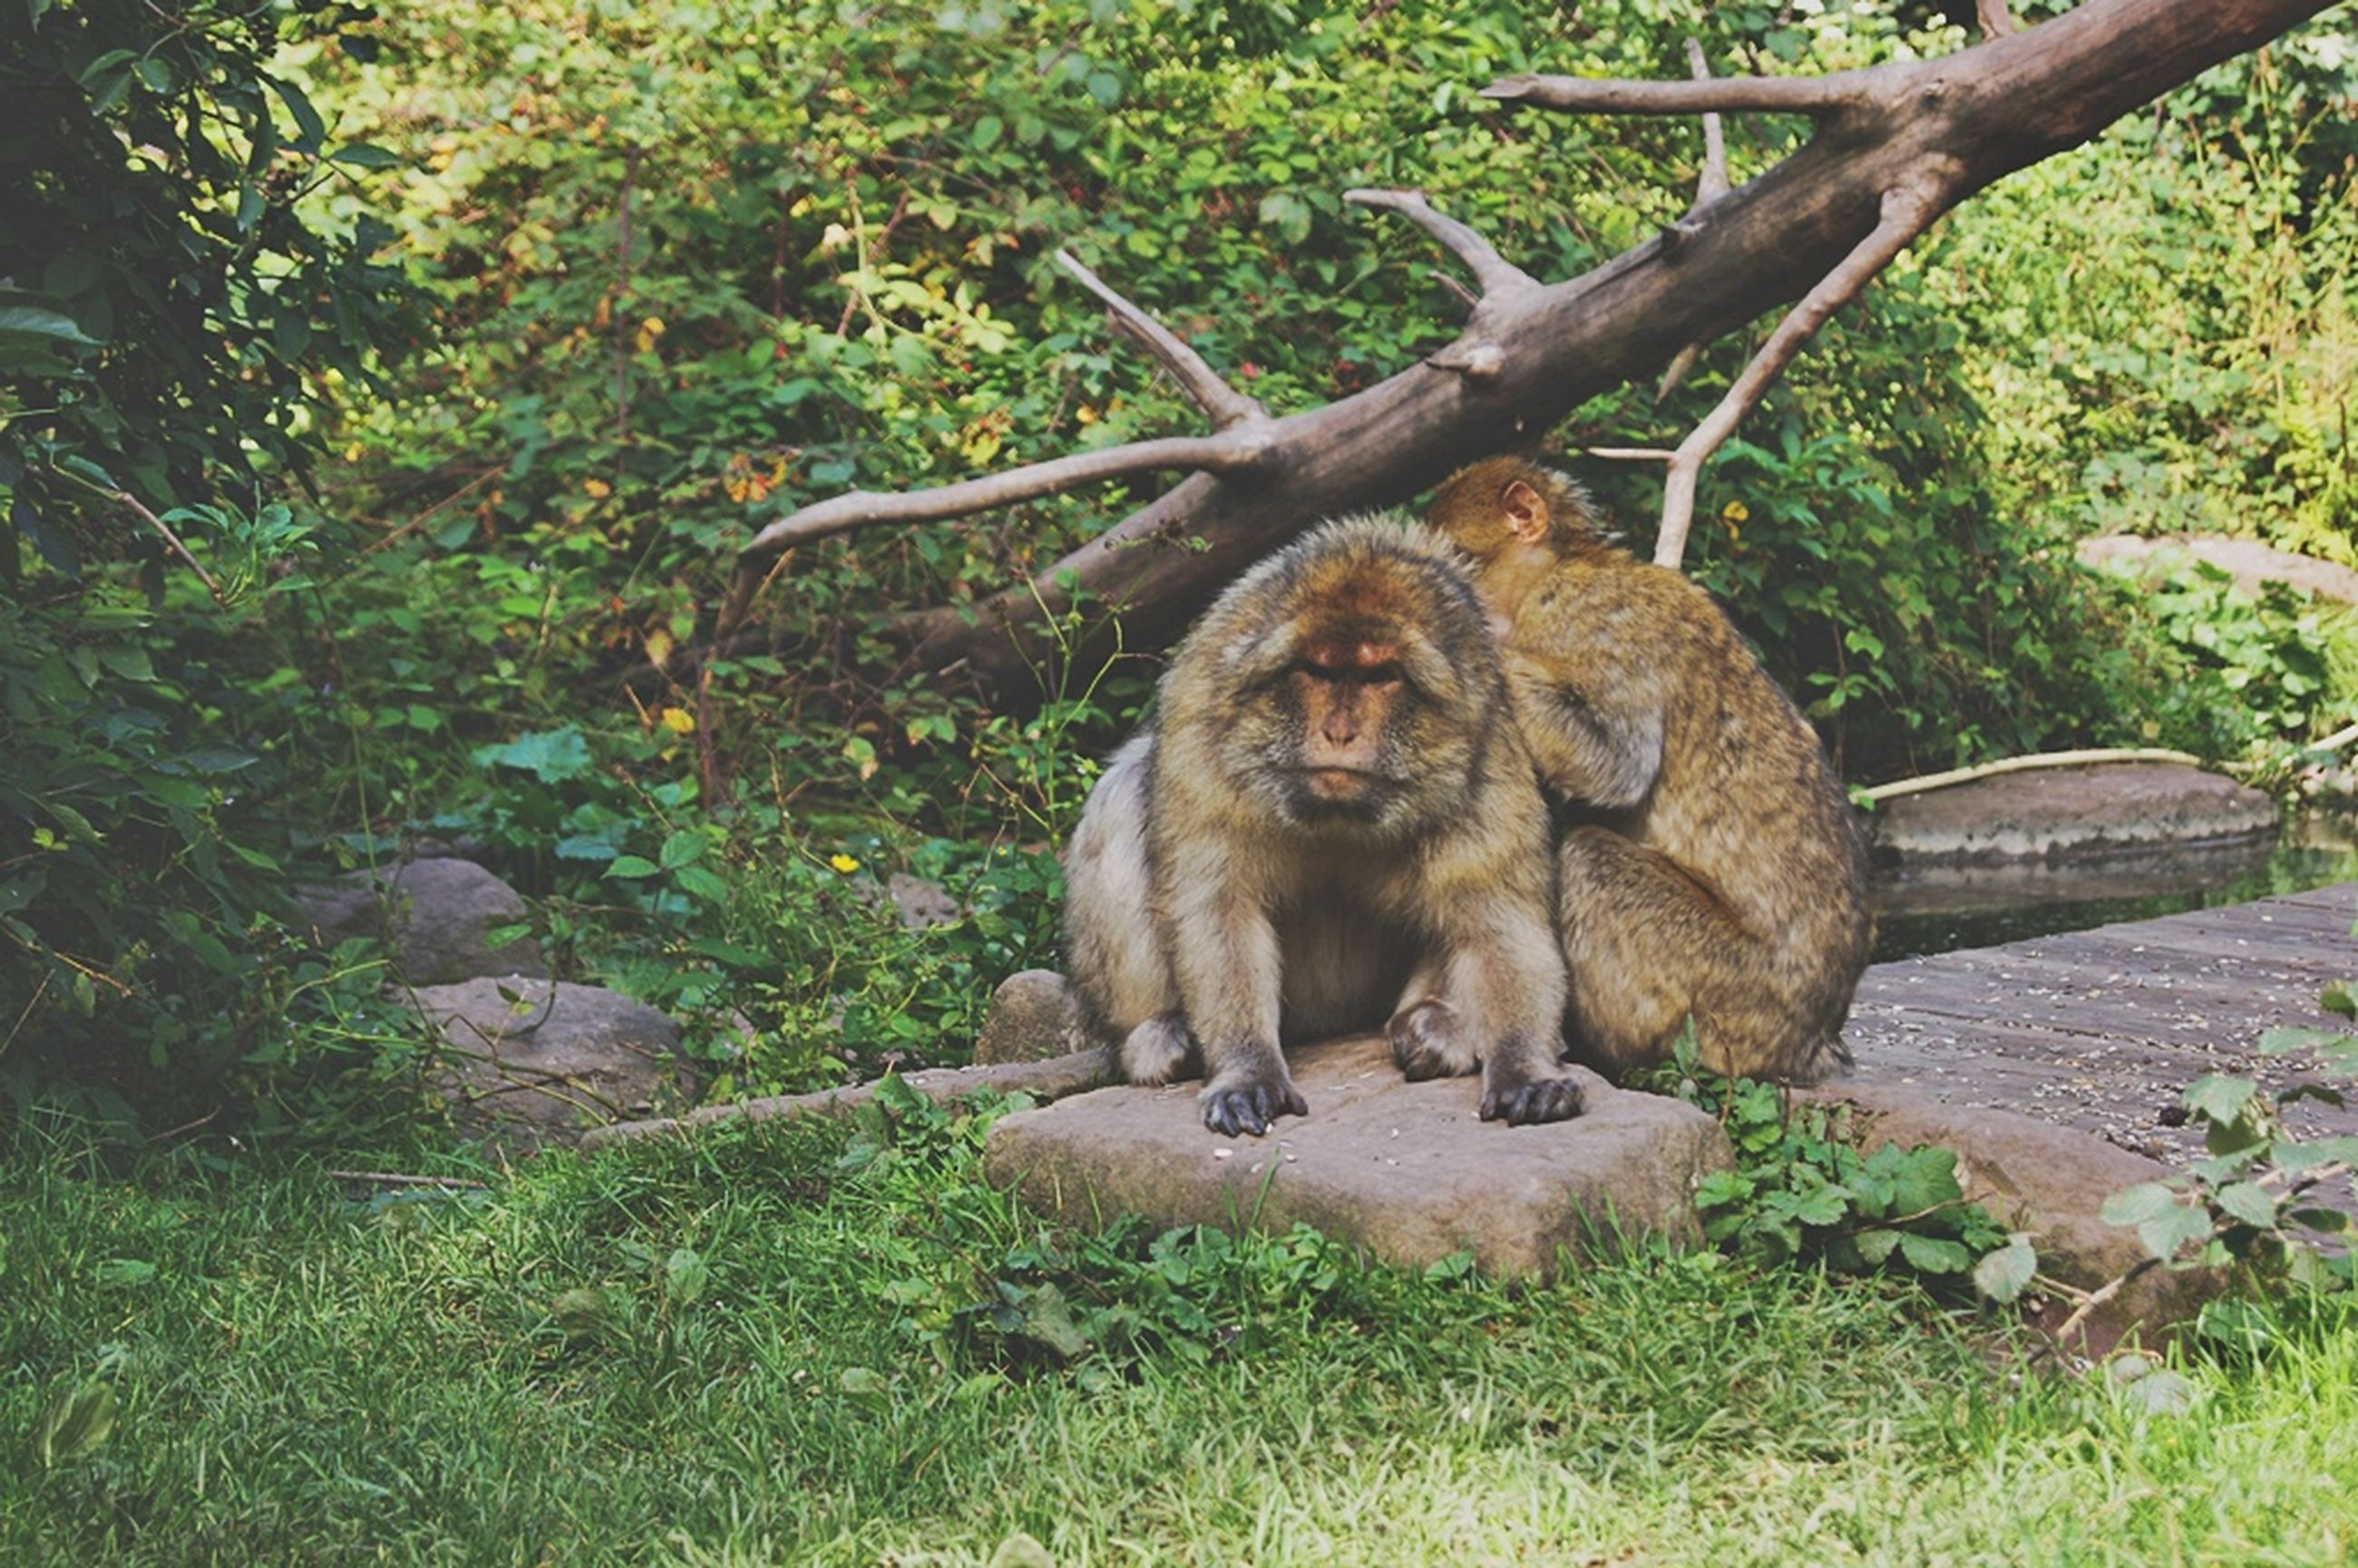 animal themes, mammal, one animal, sitting, wildlife, relaxation, animals in the wild, tree, monkey, forest, portrait, looking at camera, plant, lion - feline, lying down, resting, nature, primate, outdoors, day